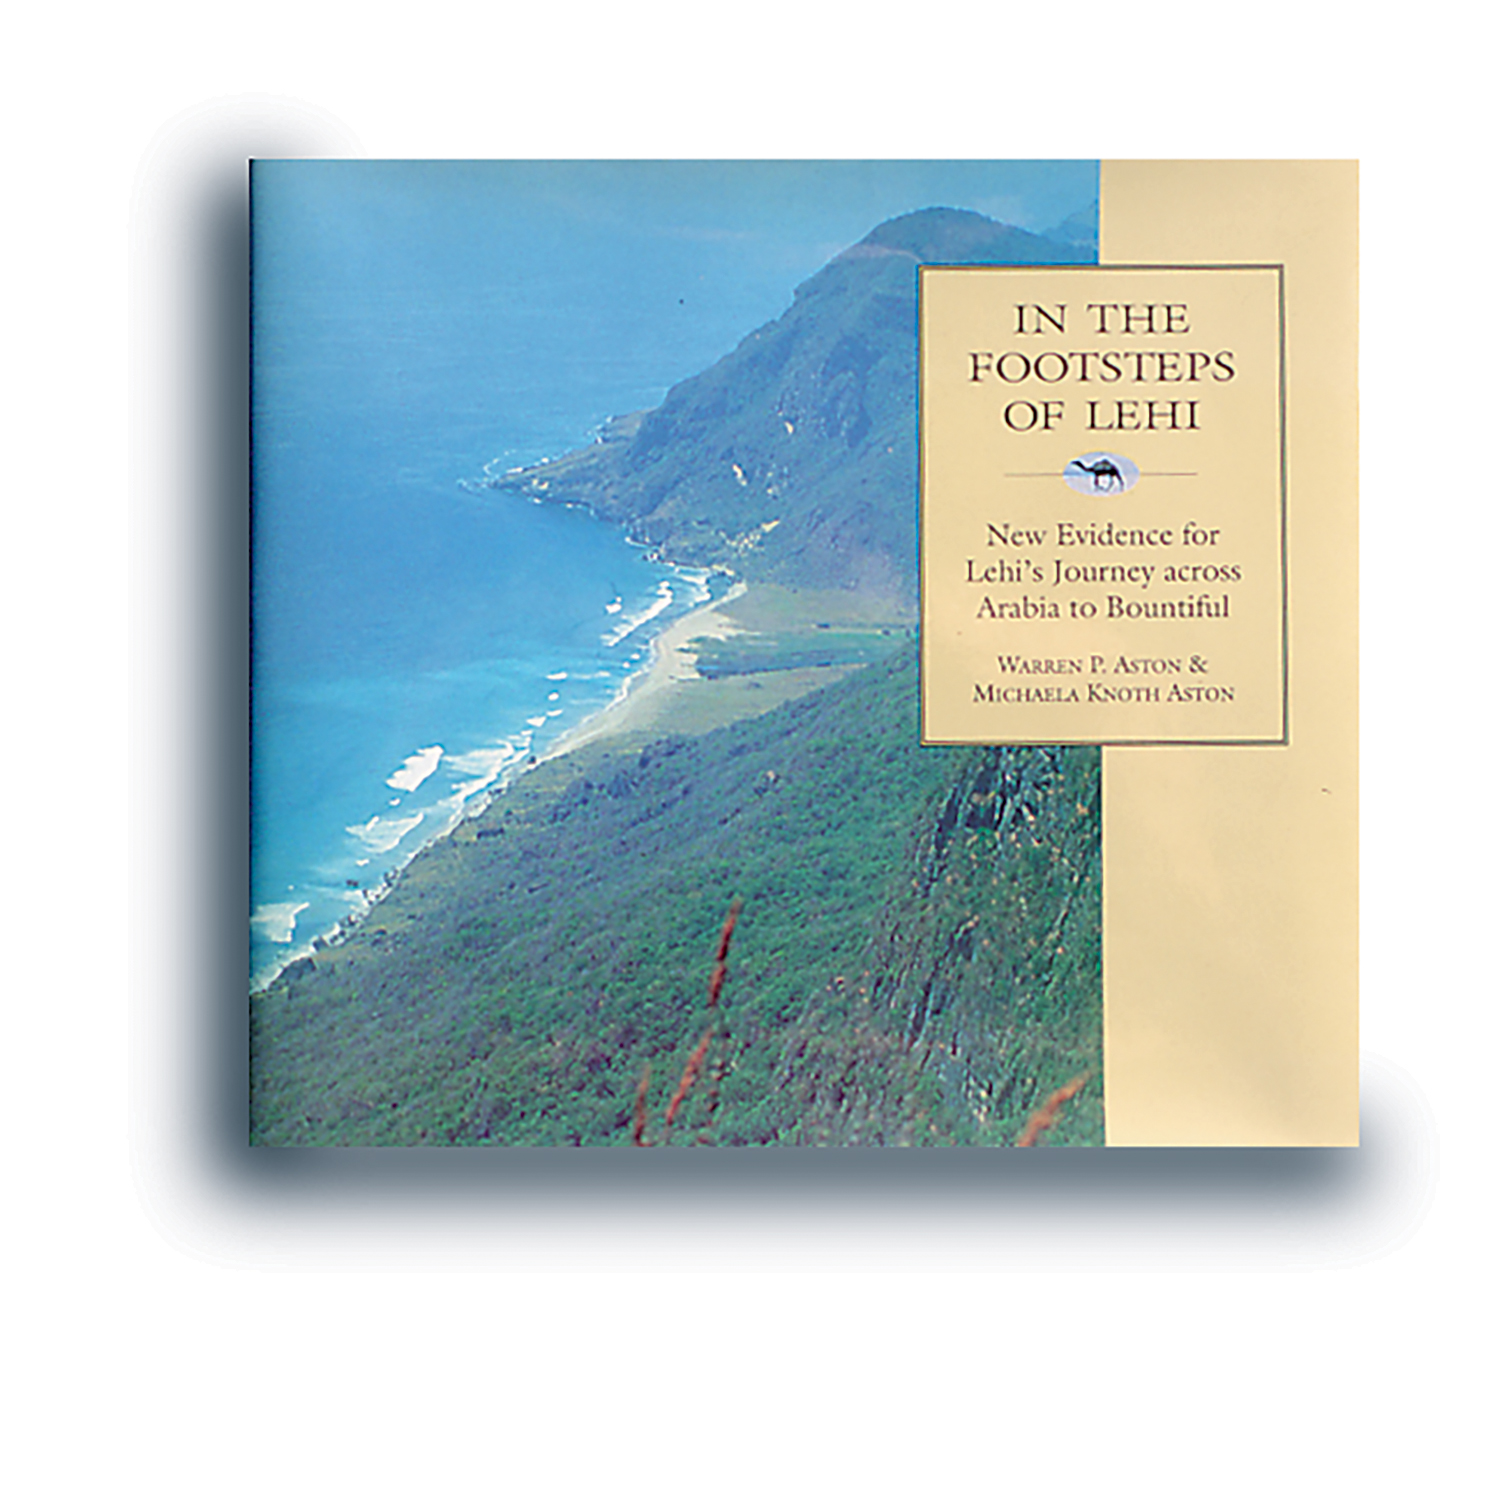 A picture of a book cover with an aerial view of mountains and an ocean.